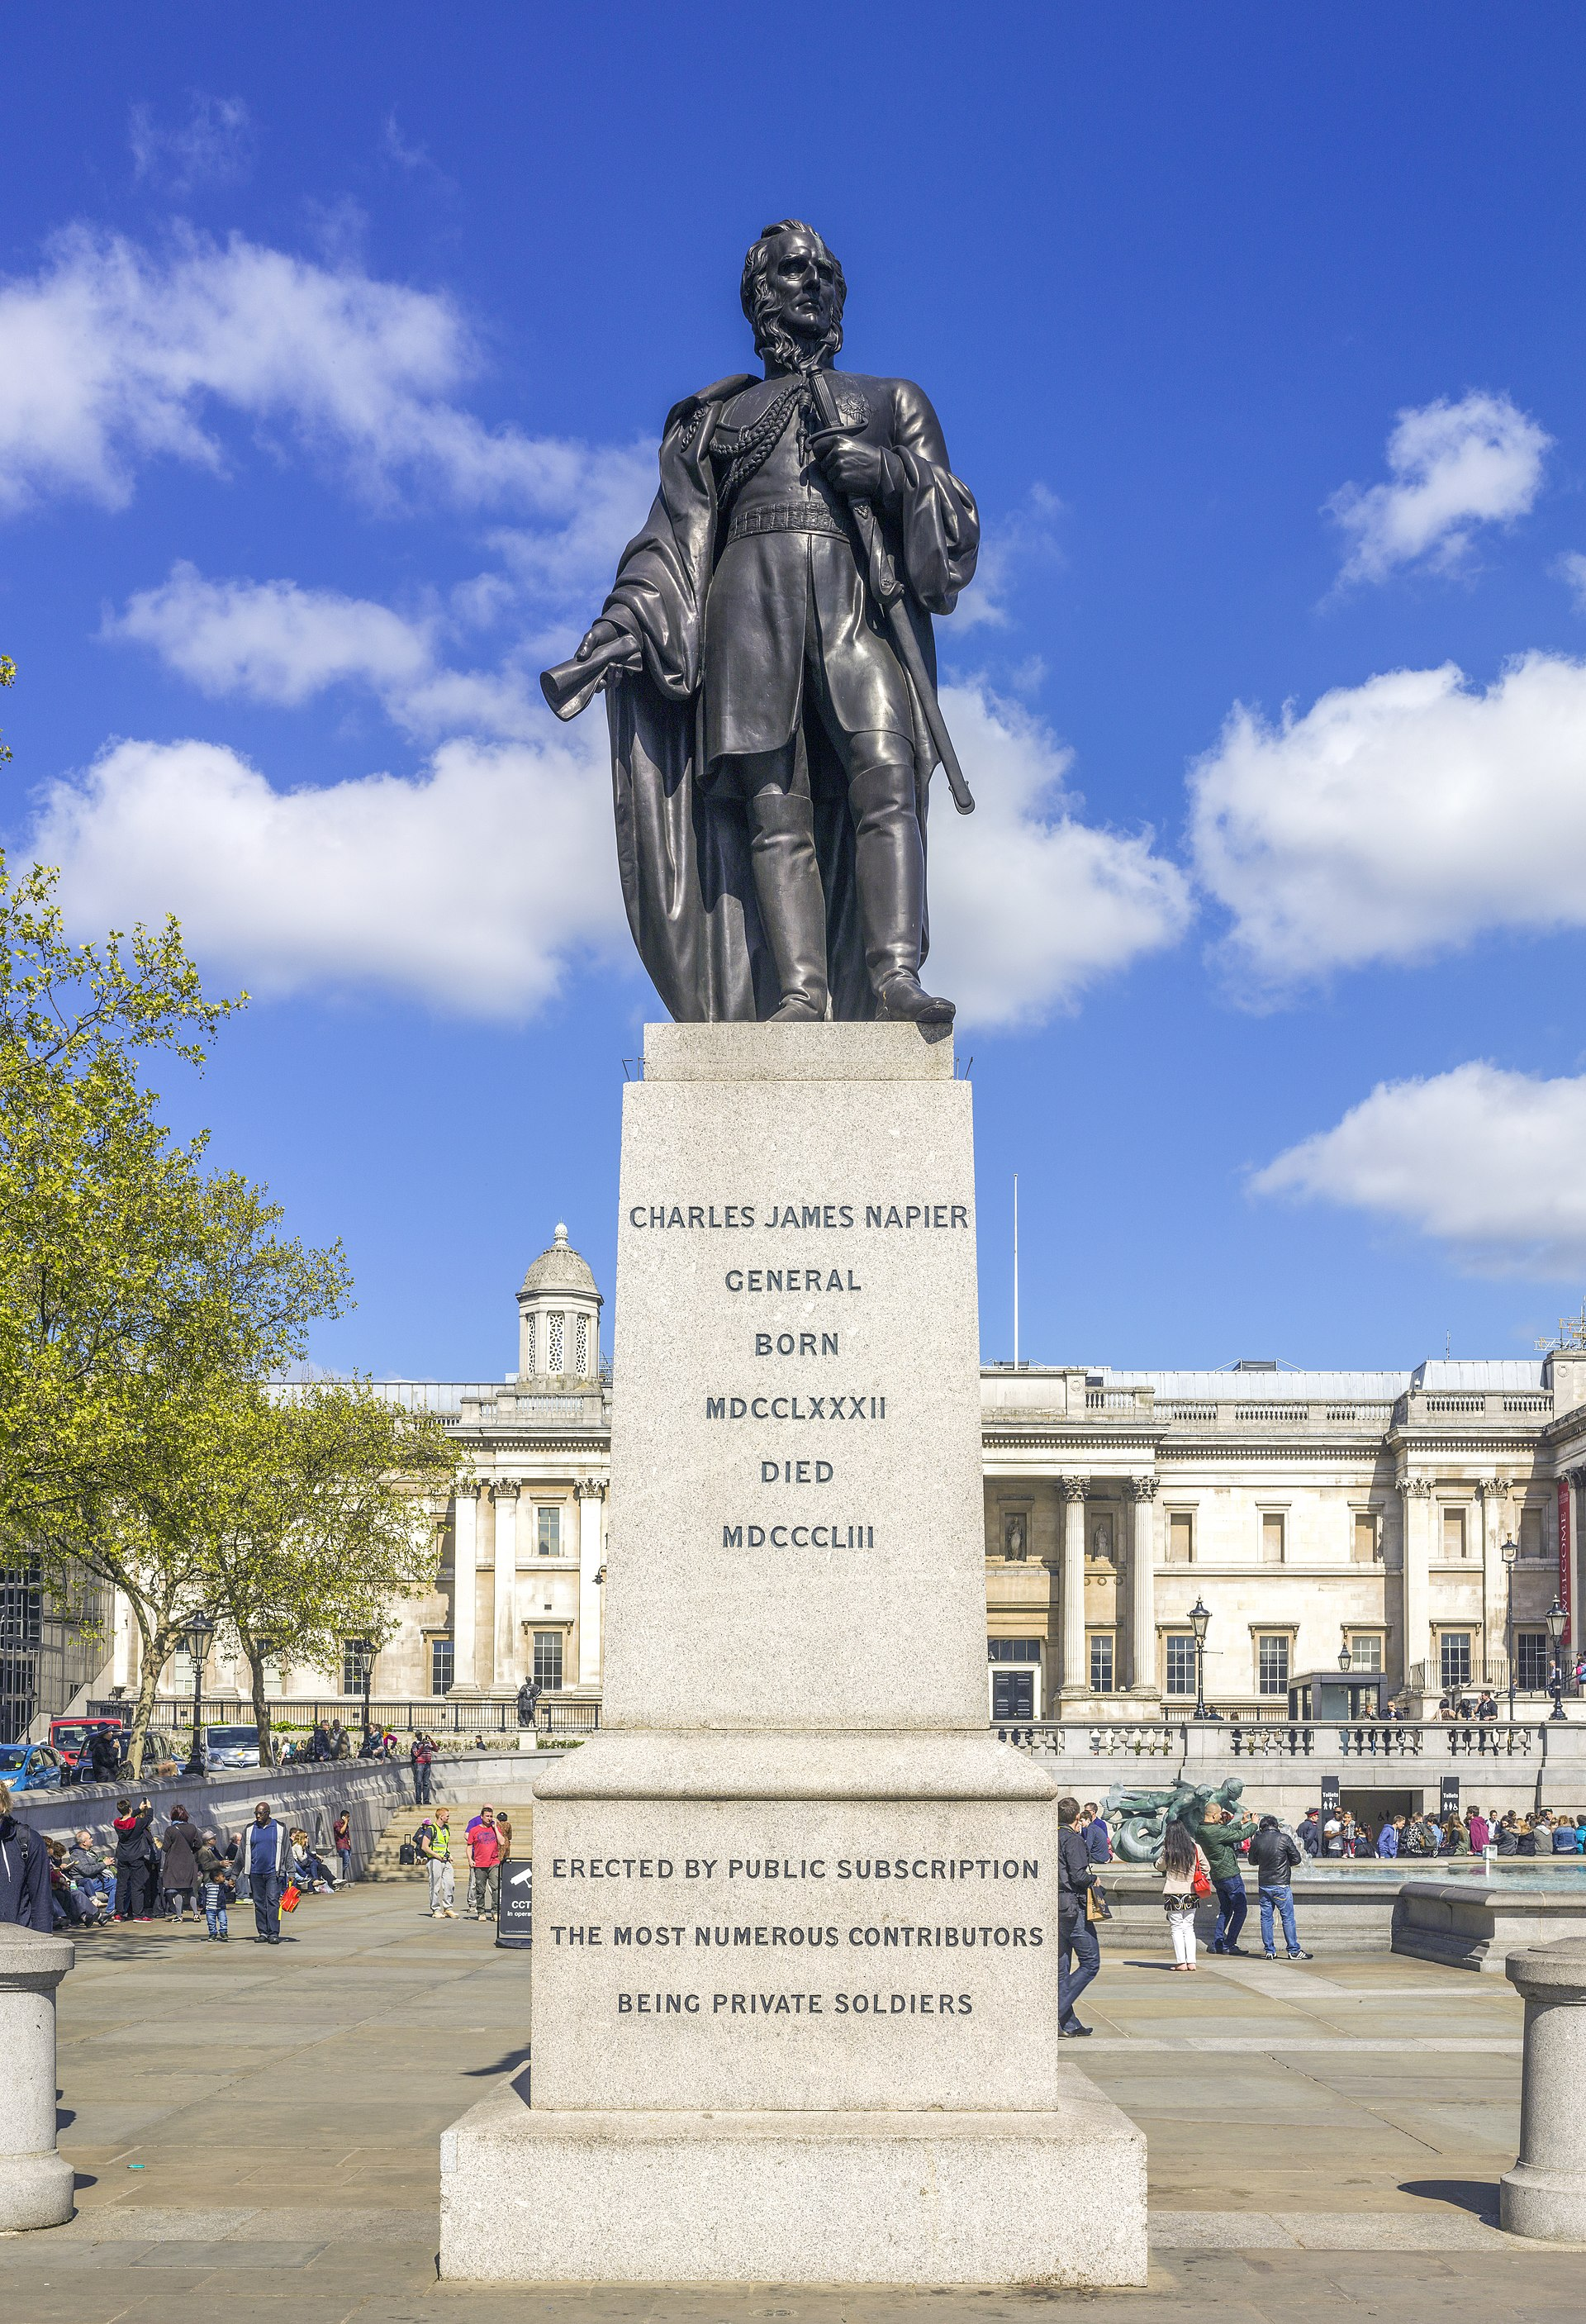 1920px-UK-2014-London-Statue_of_Charles_James_Napier.jpg